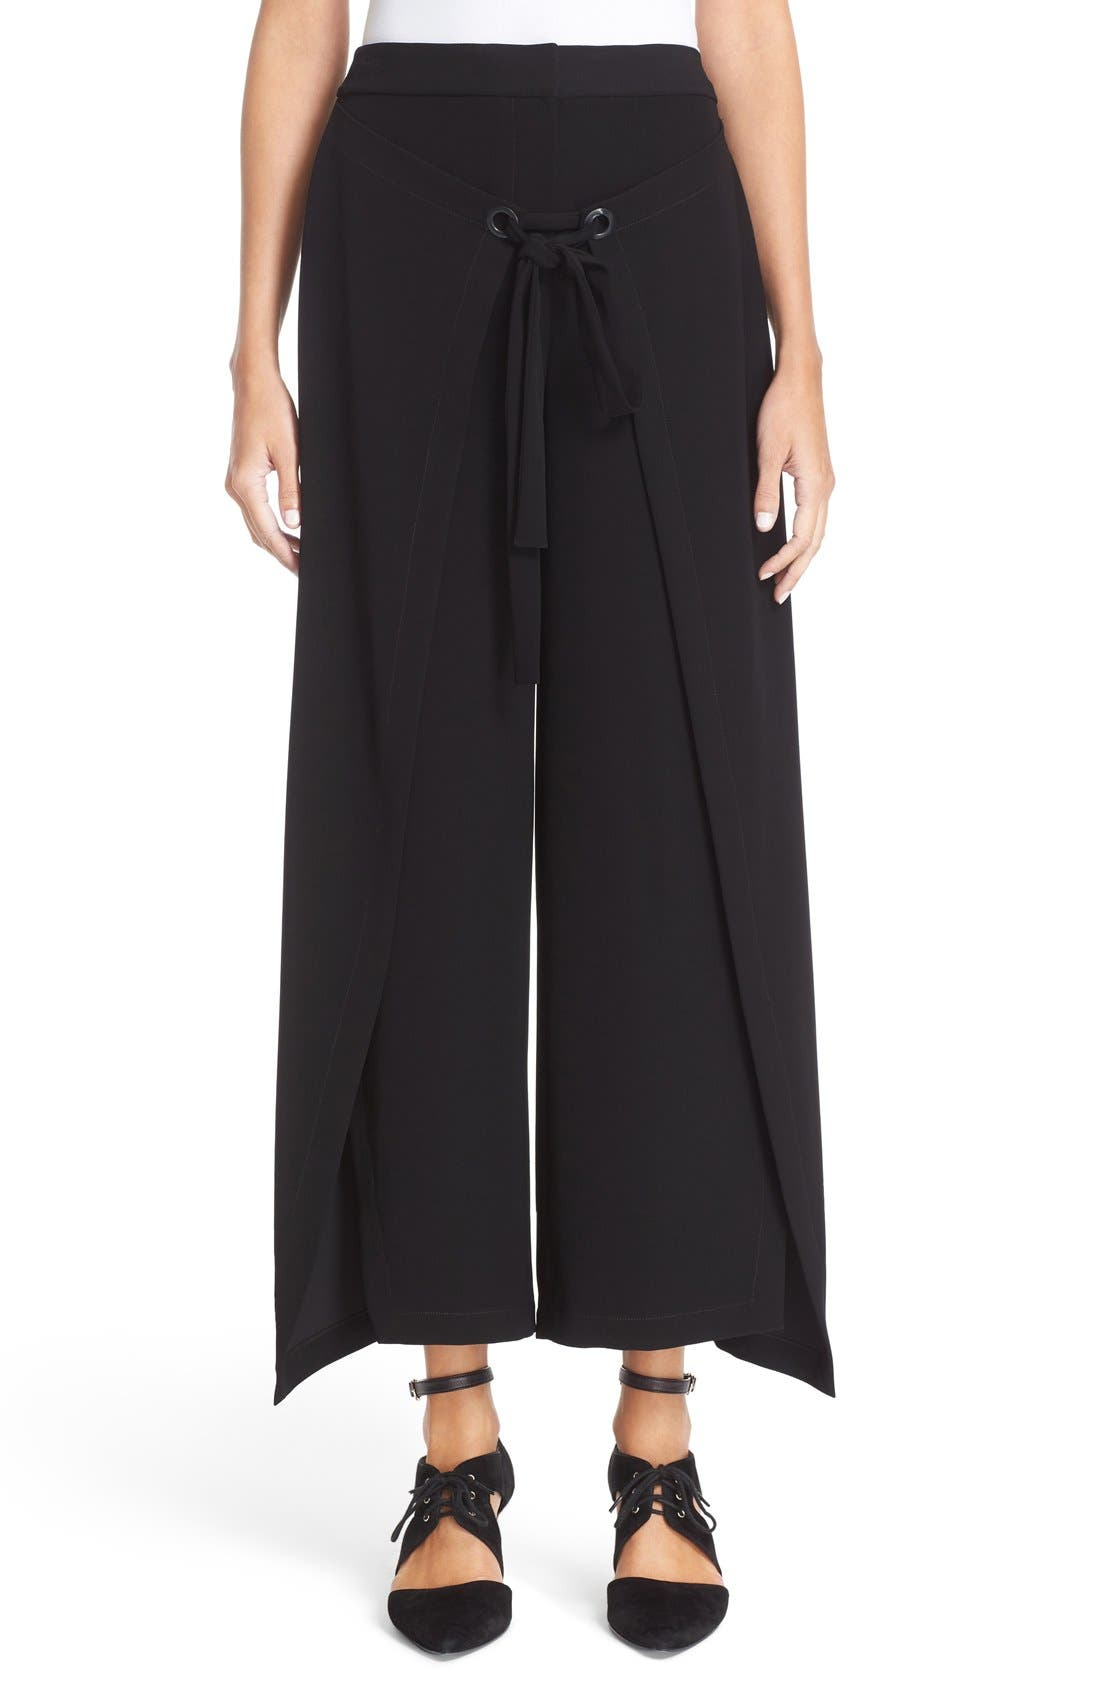 Yigal Azrouël 'Giorgio' Wrap Front Wide Leg Pants